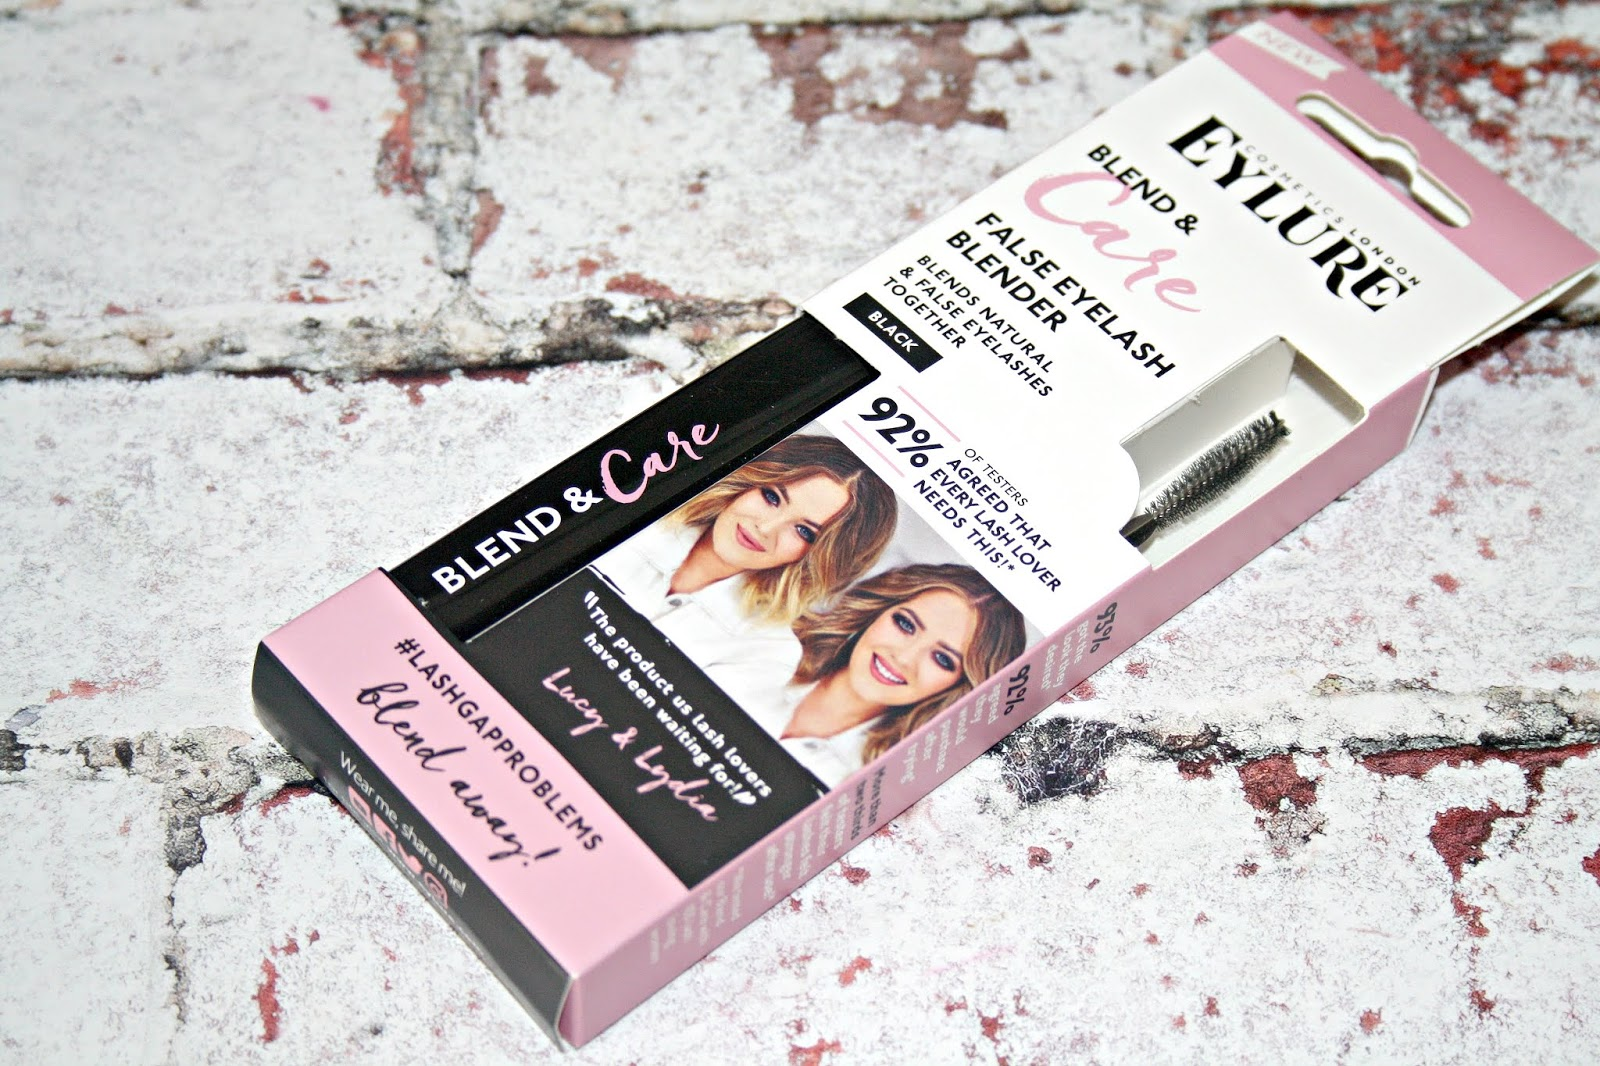 eba1e2f80ba Beautyqueenuk | A UK Beauty and Lifestyle Blog: Eylure Blend and ...